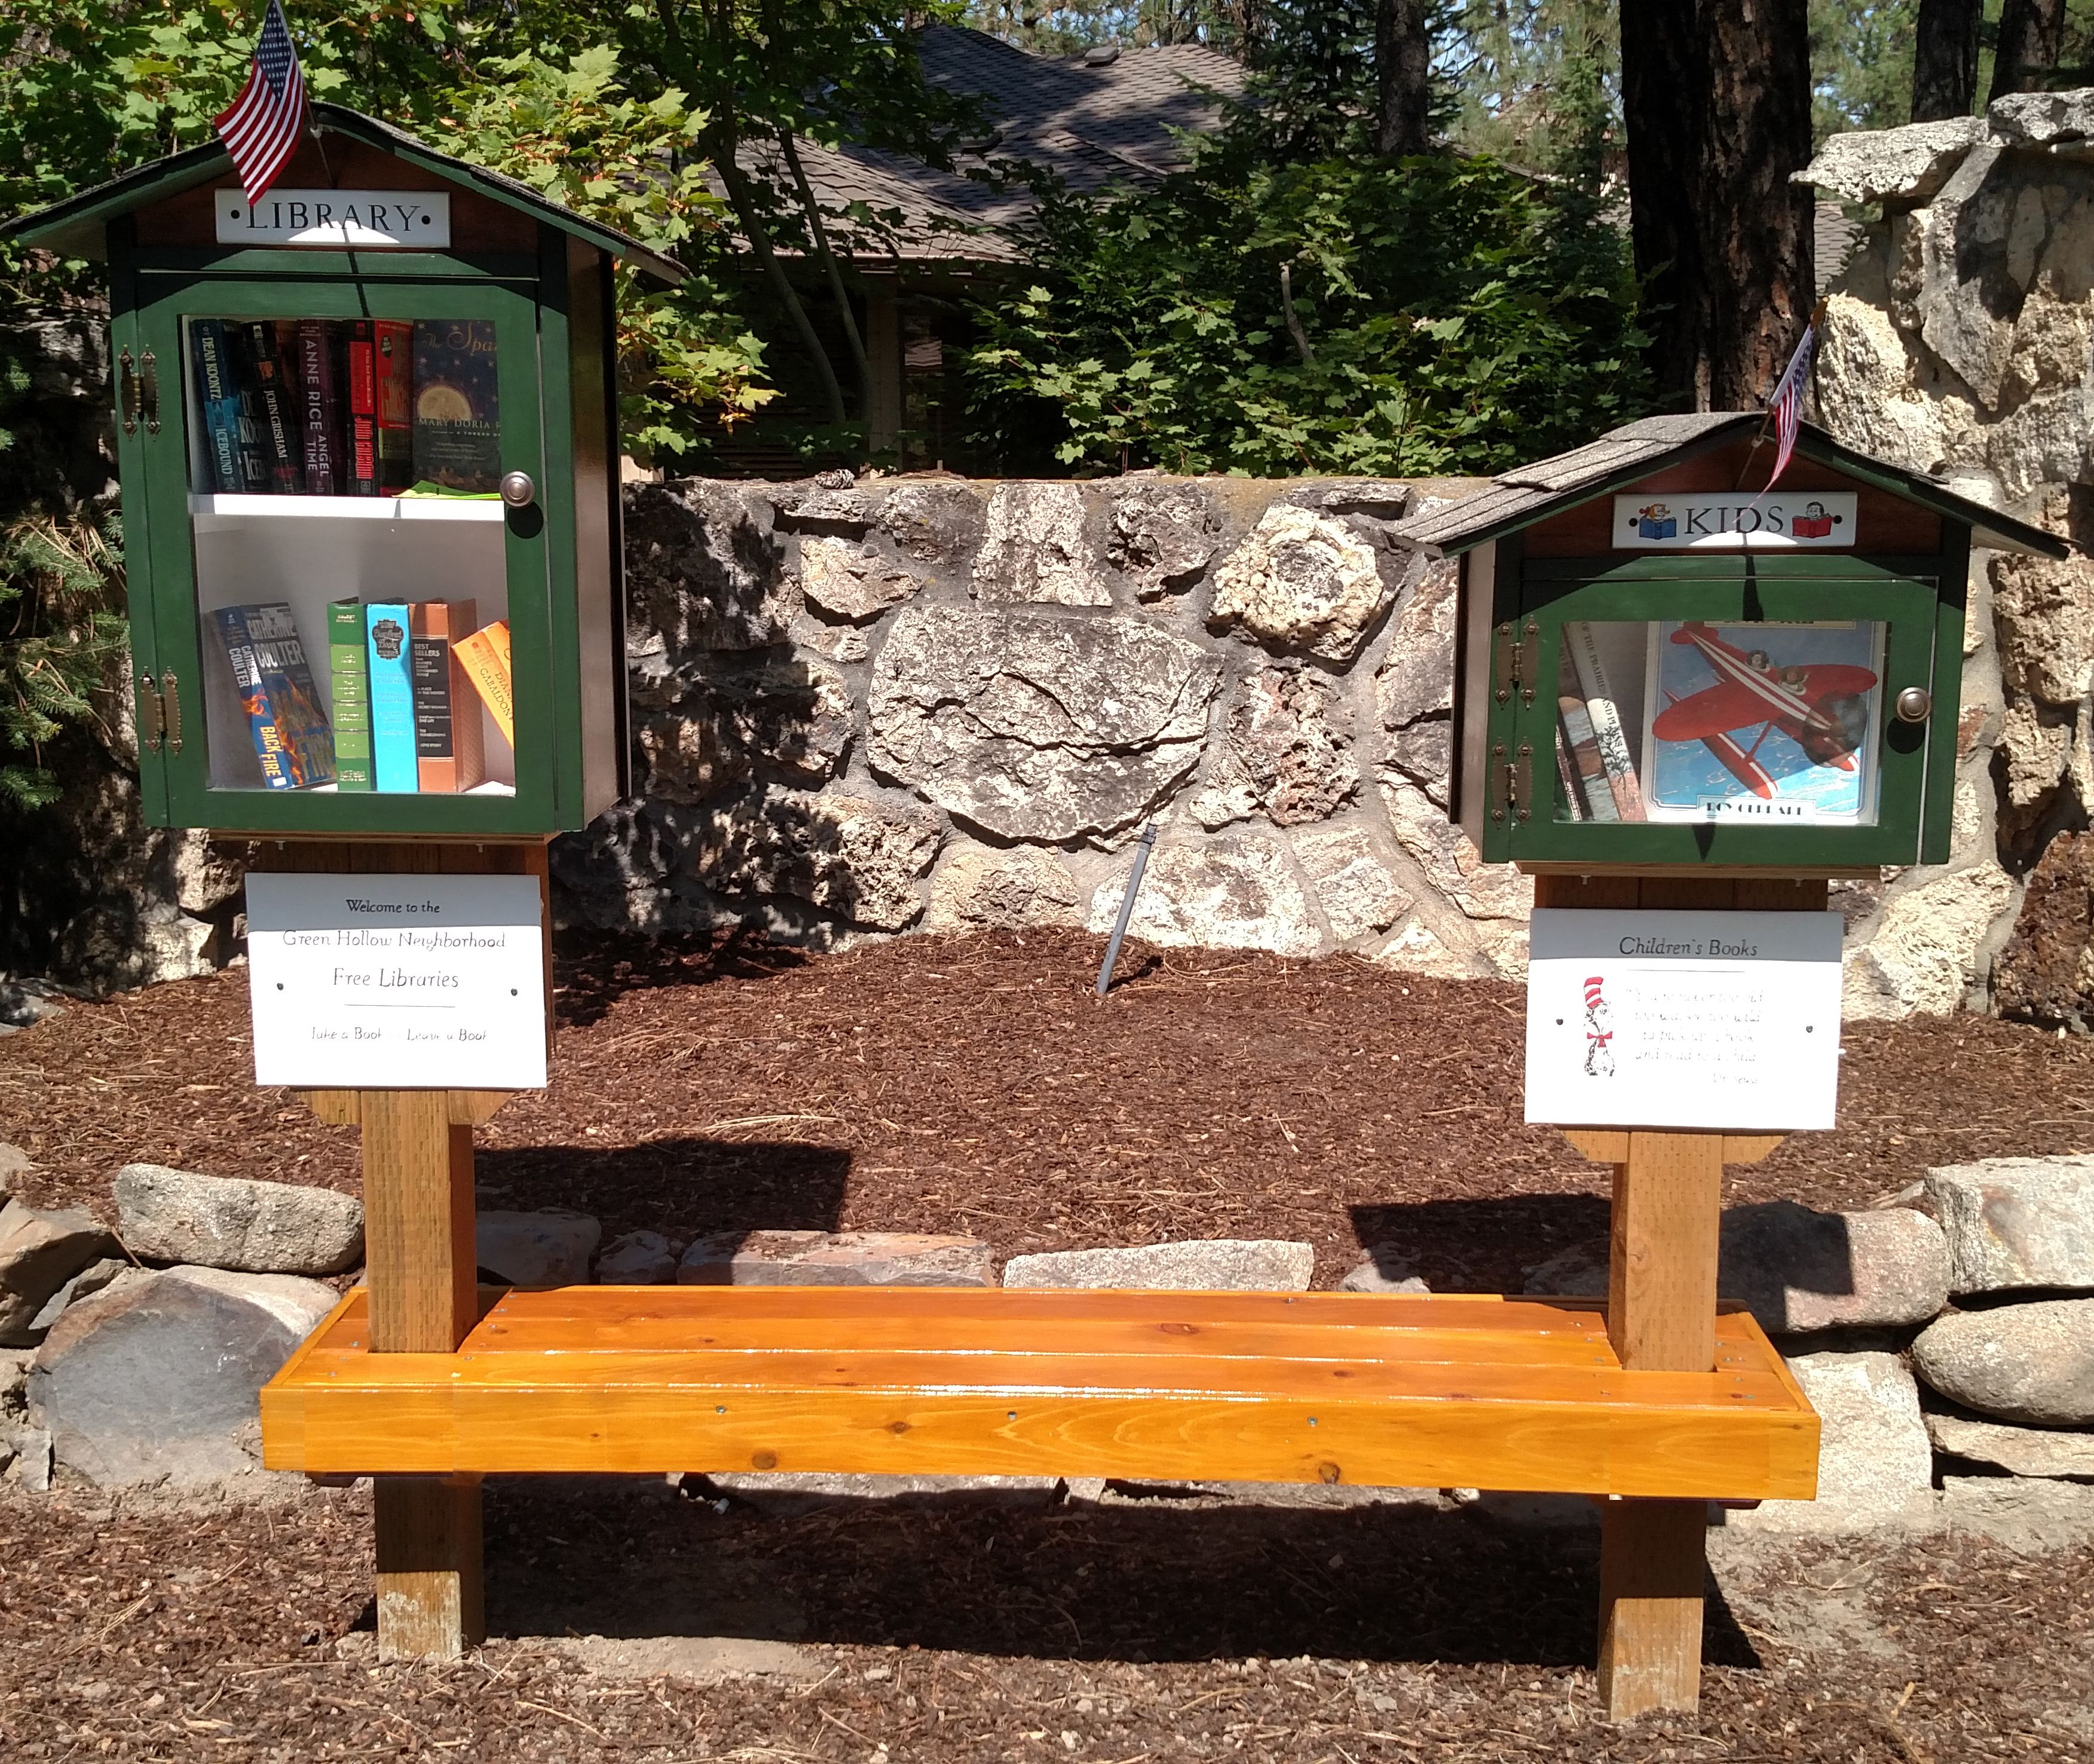 These little free libraries can be found on the corner of Waikiki and Hemlock at the entrance to the Green Hollow neighborhood. A two-story library for adults and a separate smaller library for children's books connected by a redwood and cedar bench. Way cool! Purchased and donated to the community by Stephanie Peterson of Windermere Real Estate. Built by Little Library Builder of Spokane!! littlelibrarybuilder@gmail.com